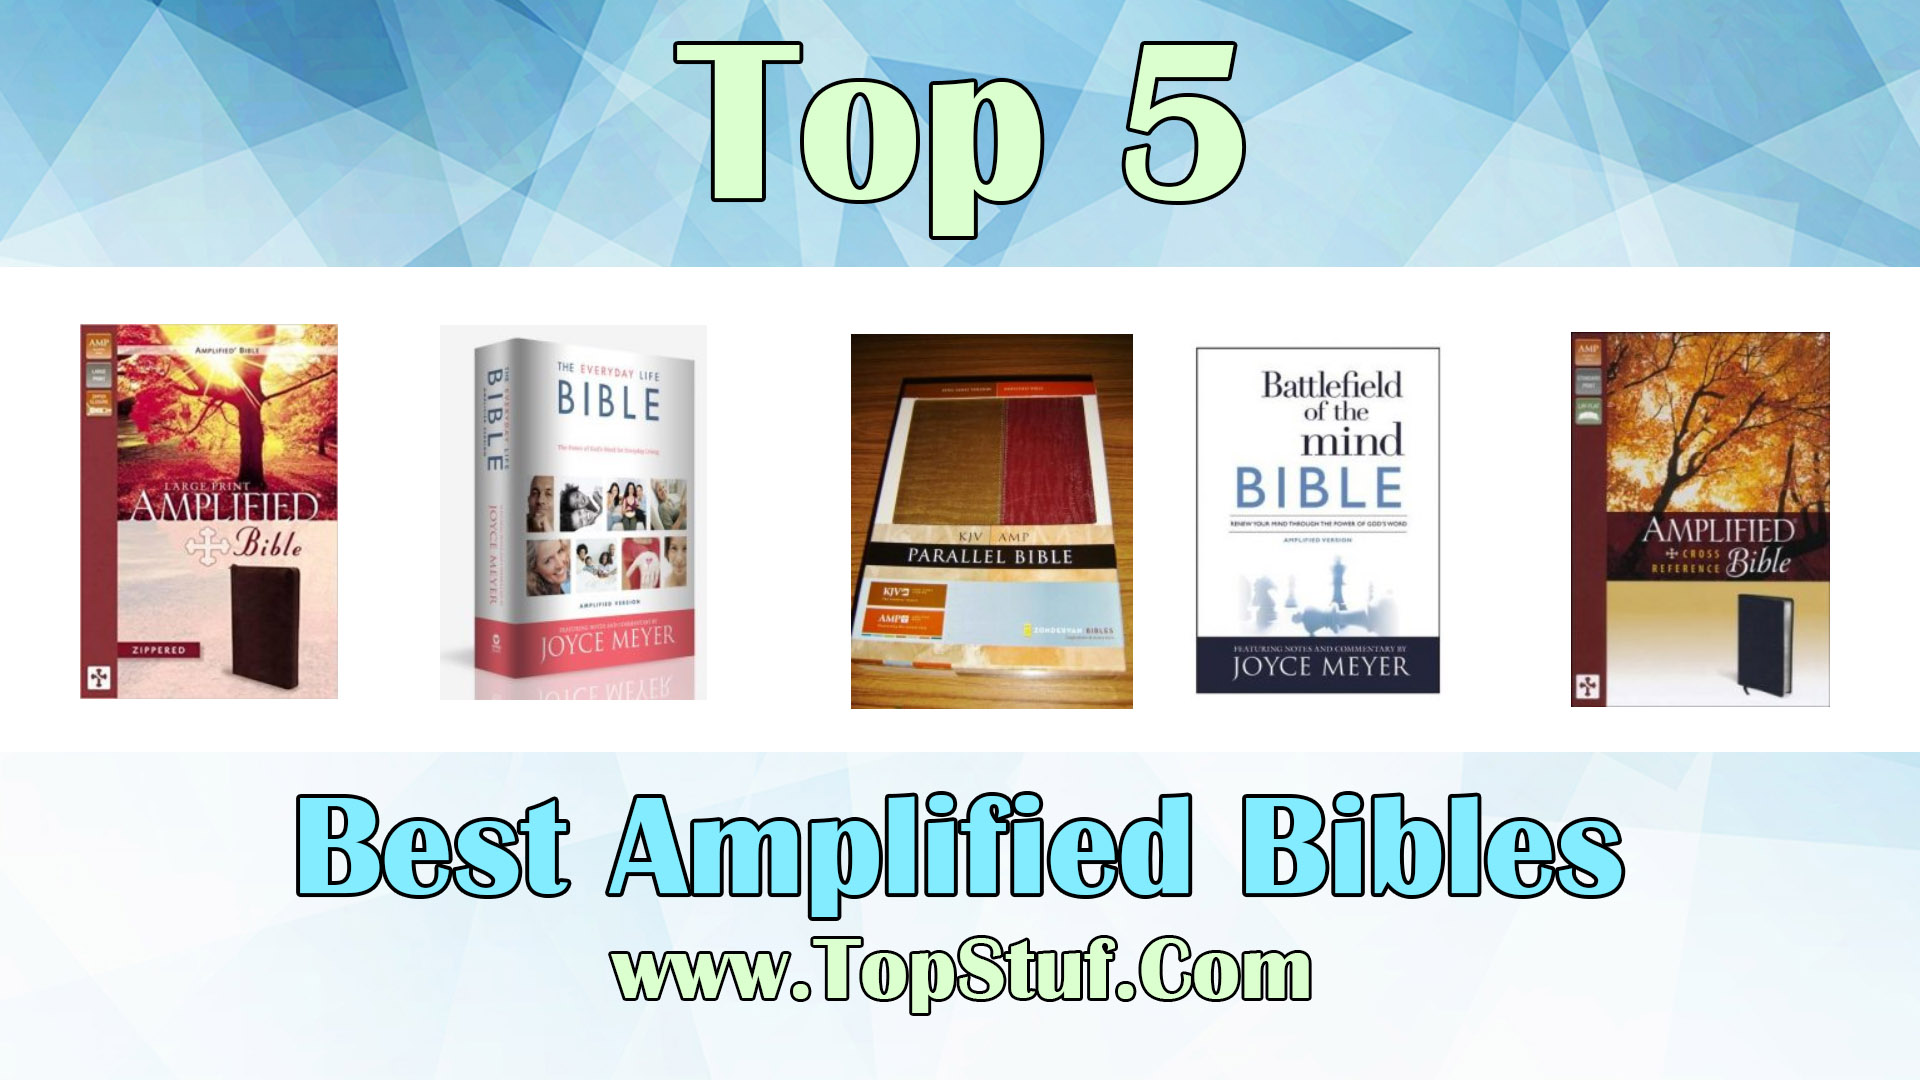 Best Amplified Bibles